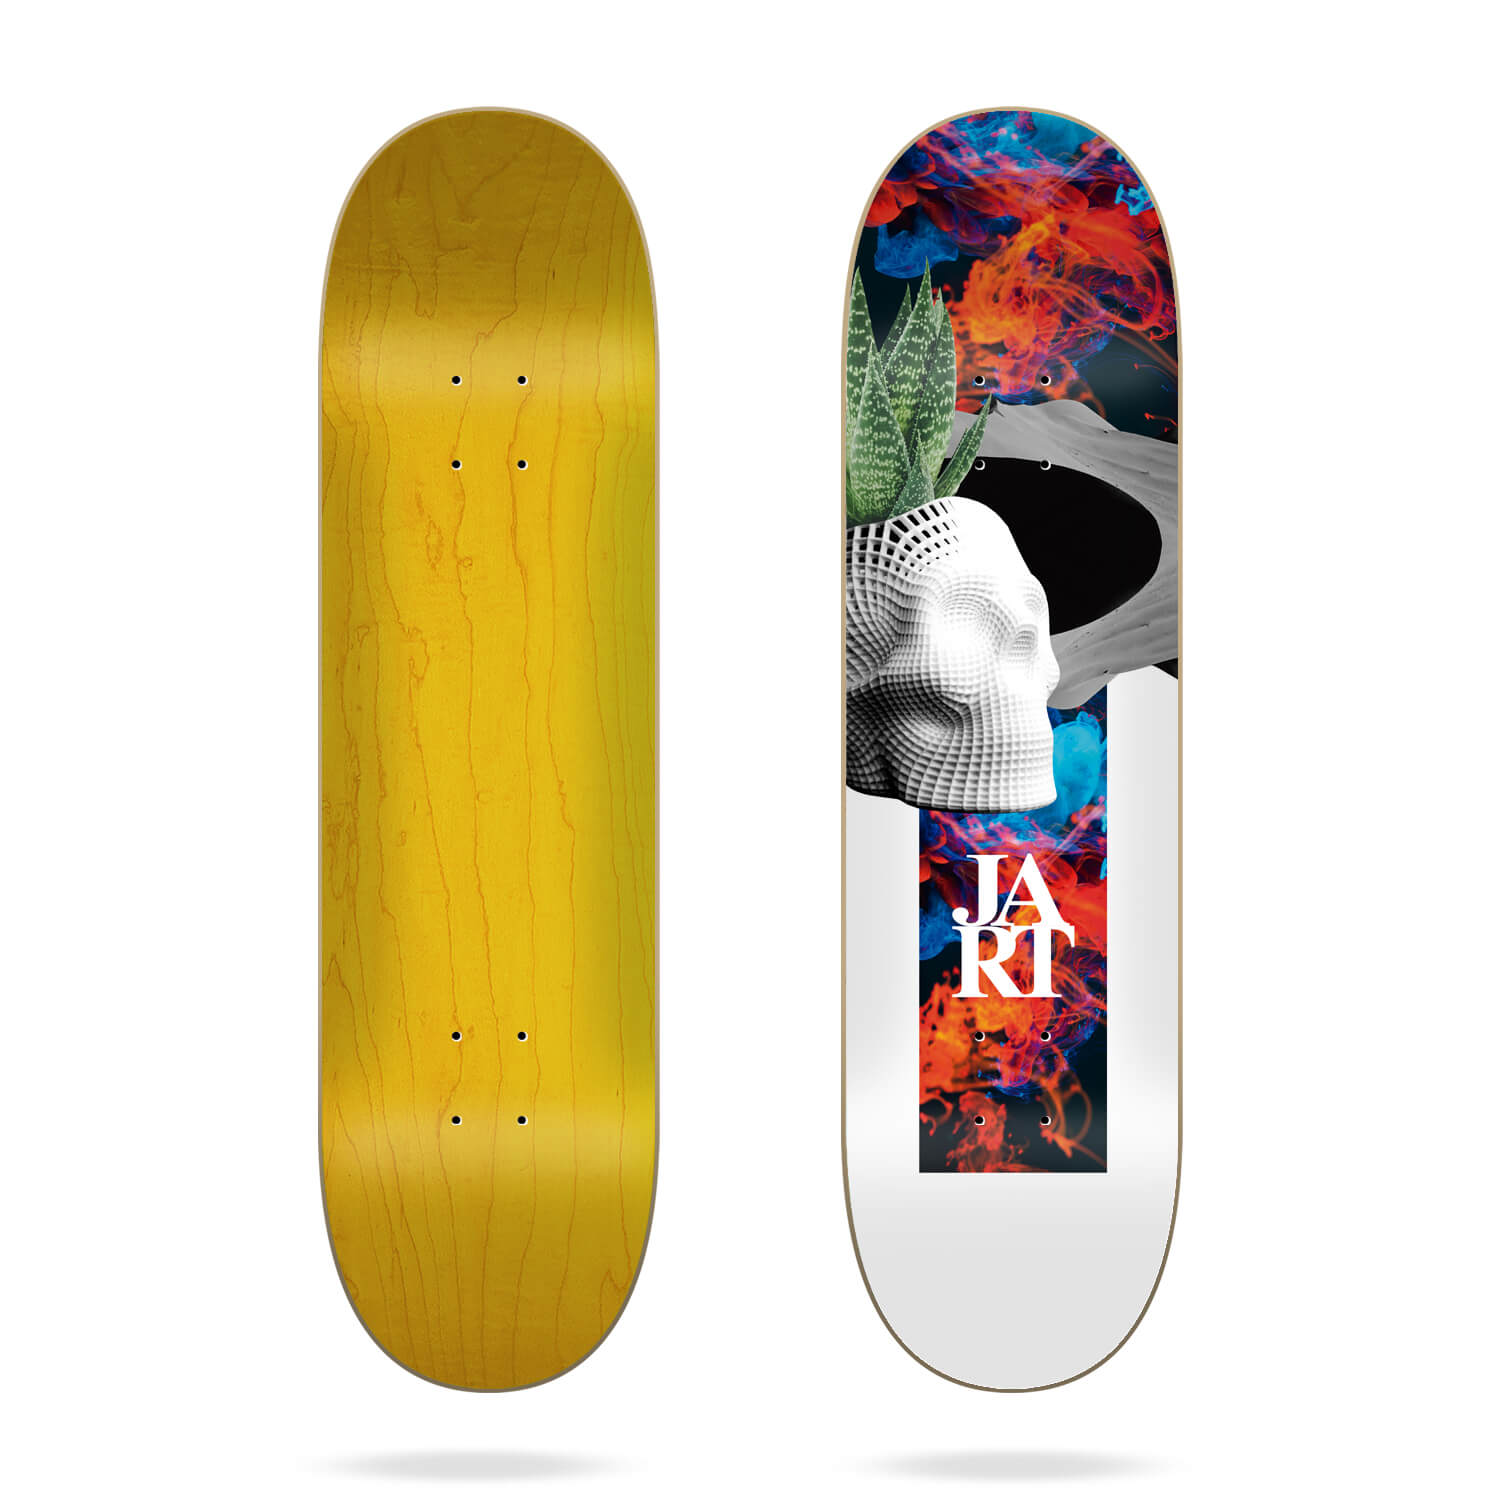 "Jart Abstraction 8.0"" Deck"